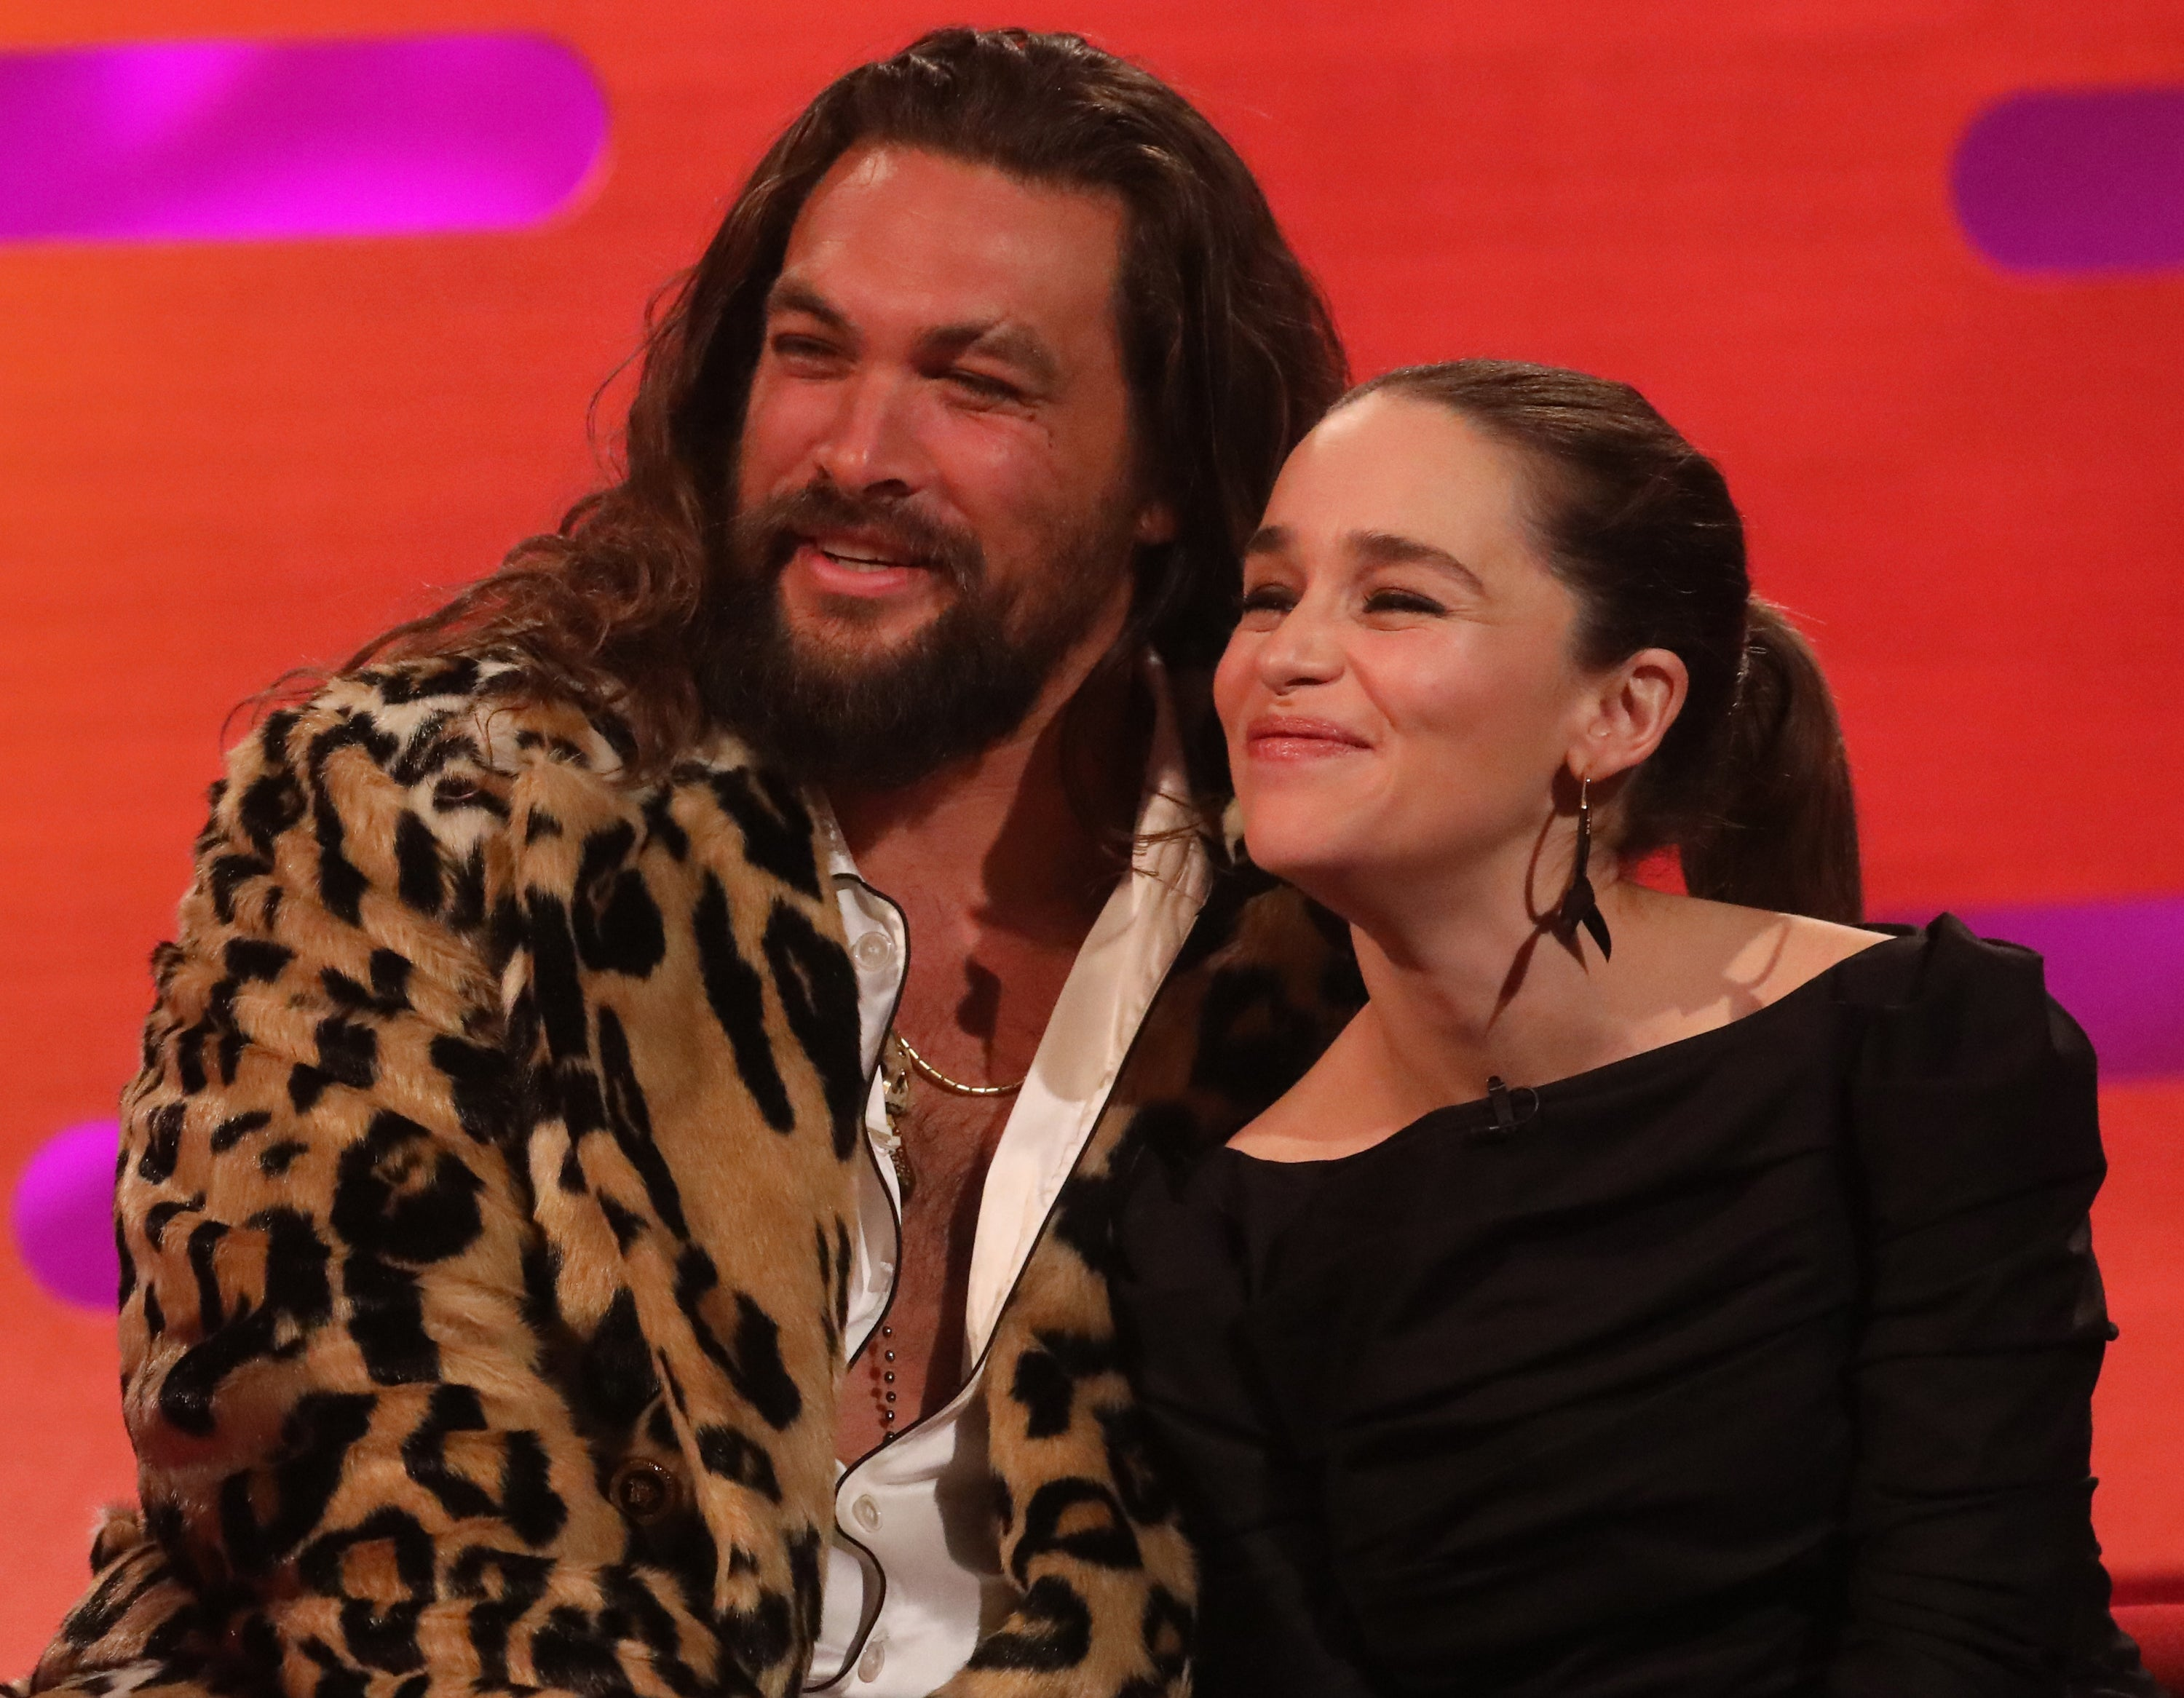 Jason wears a leopard jacket while sitting next to Emilia during a talk show interview